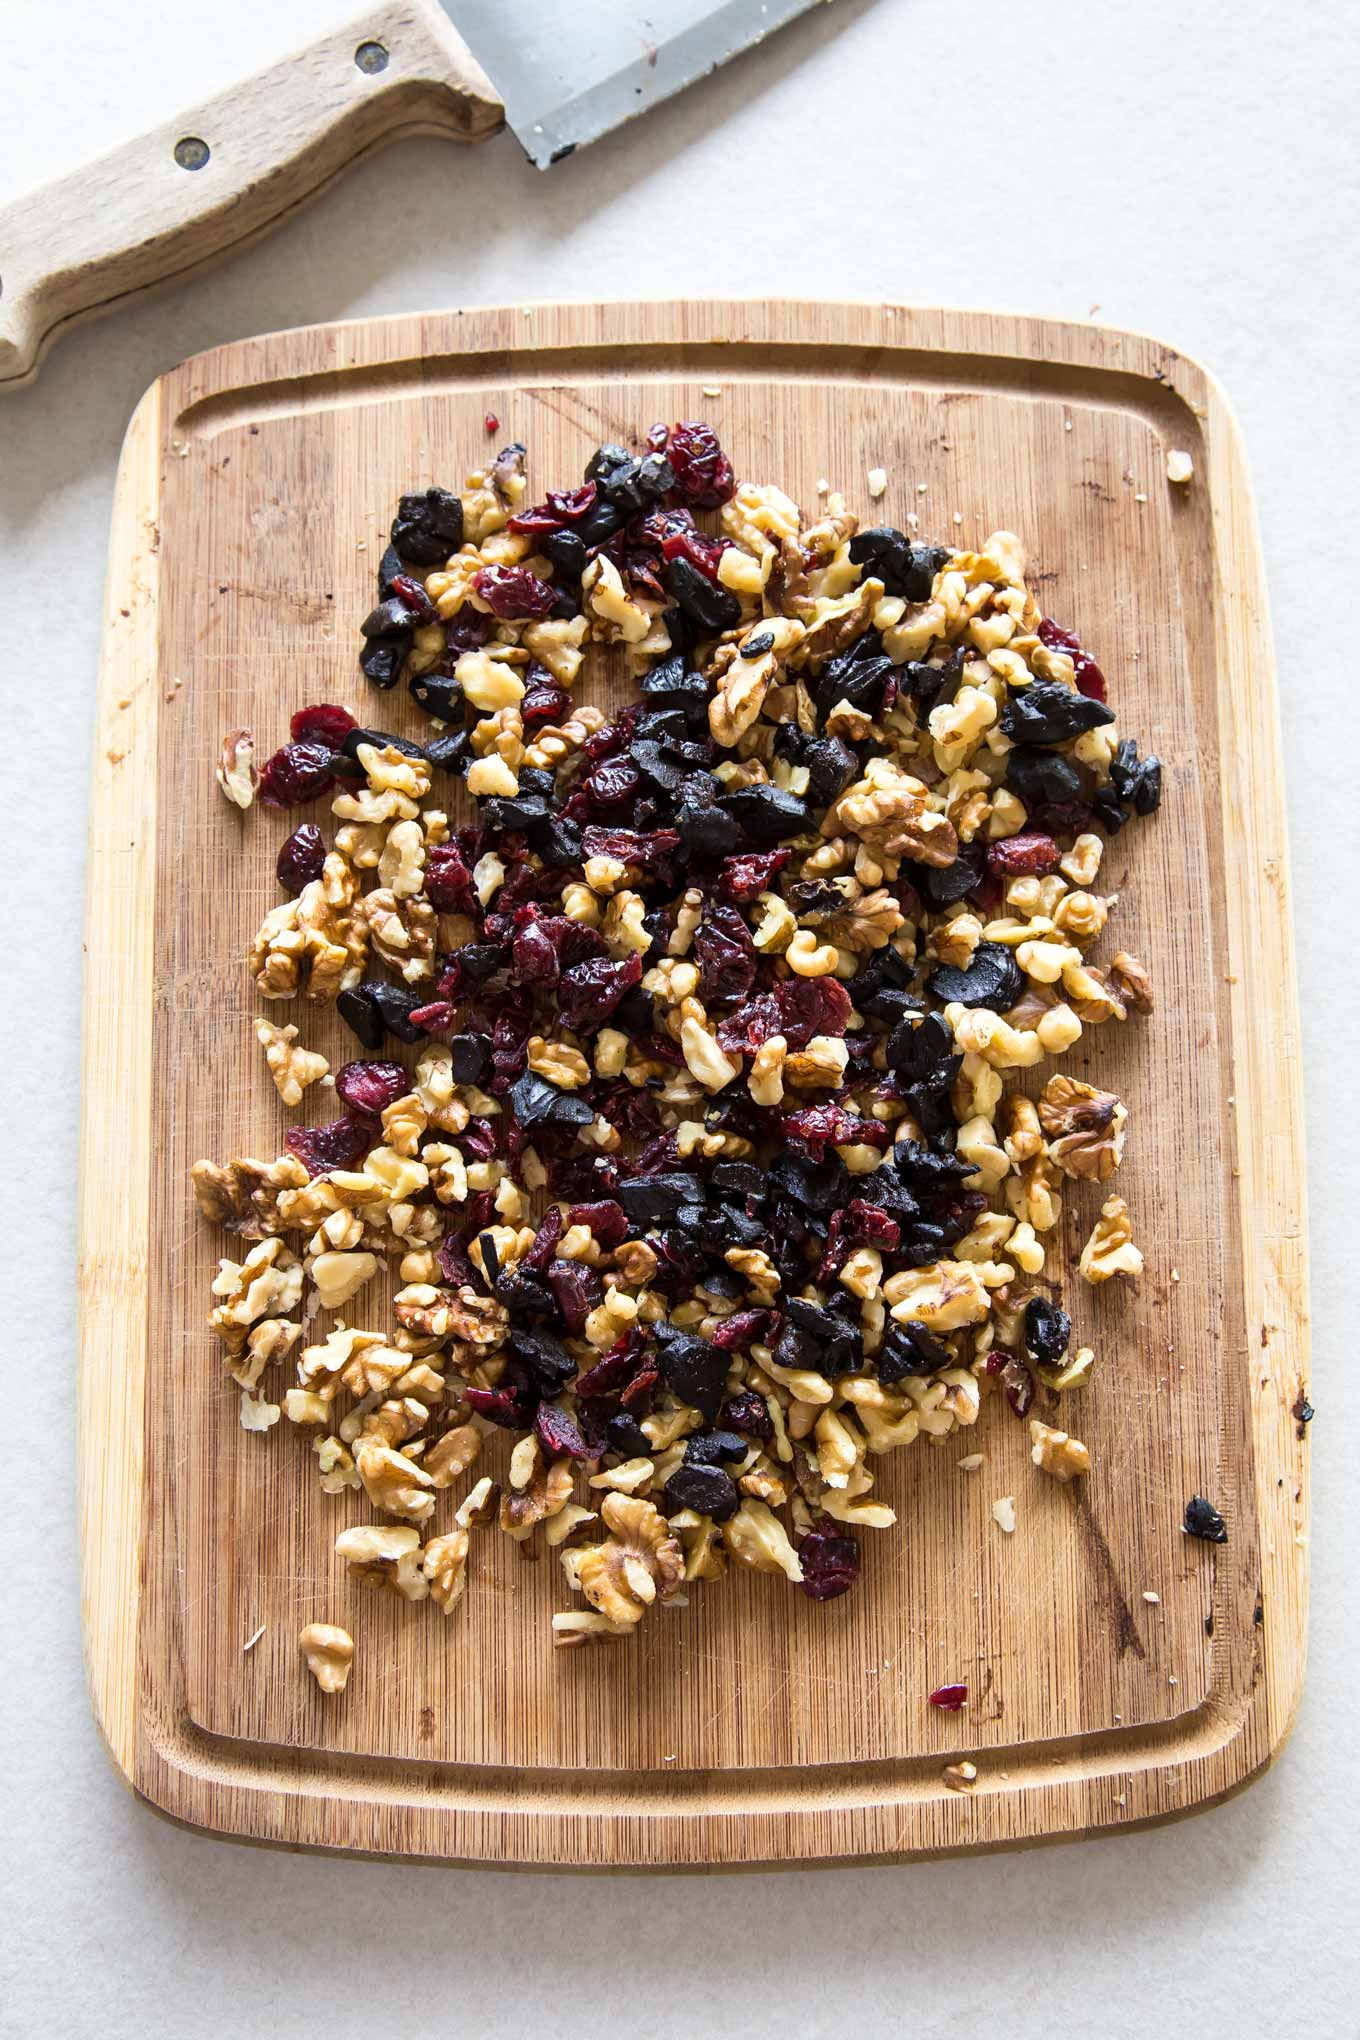 Chopped cranberries, nuts and black garlic spread on a chopping board